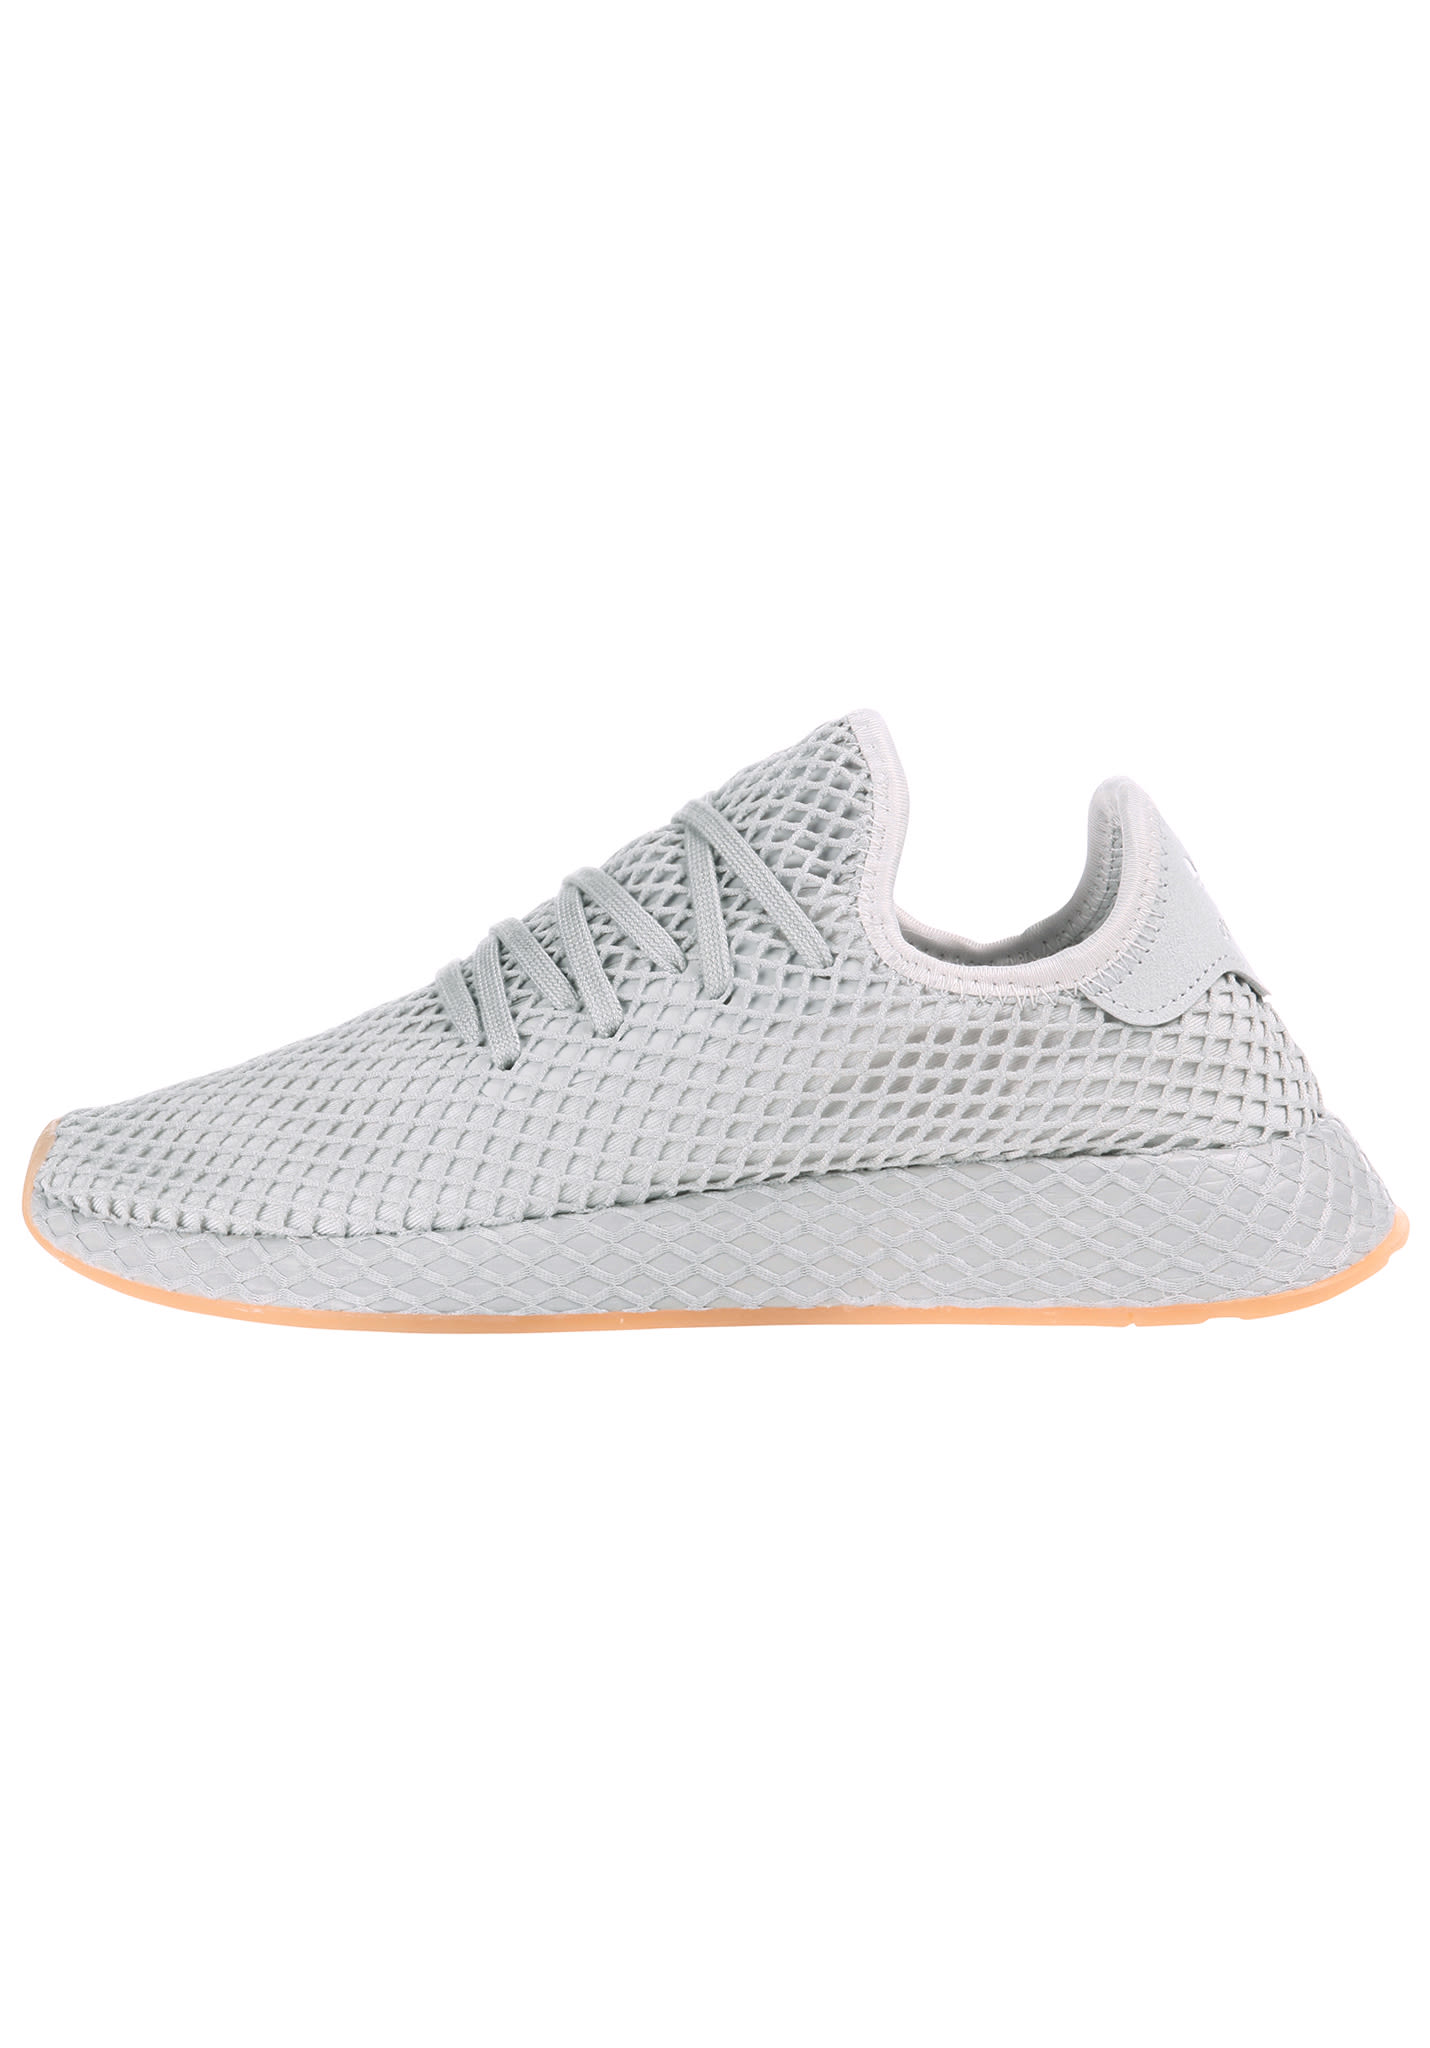 b2885058e6b ADIDAS ORIGINALS Deerupt Runner - Sneakers voor Heren - Grijs - Planet  Sports